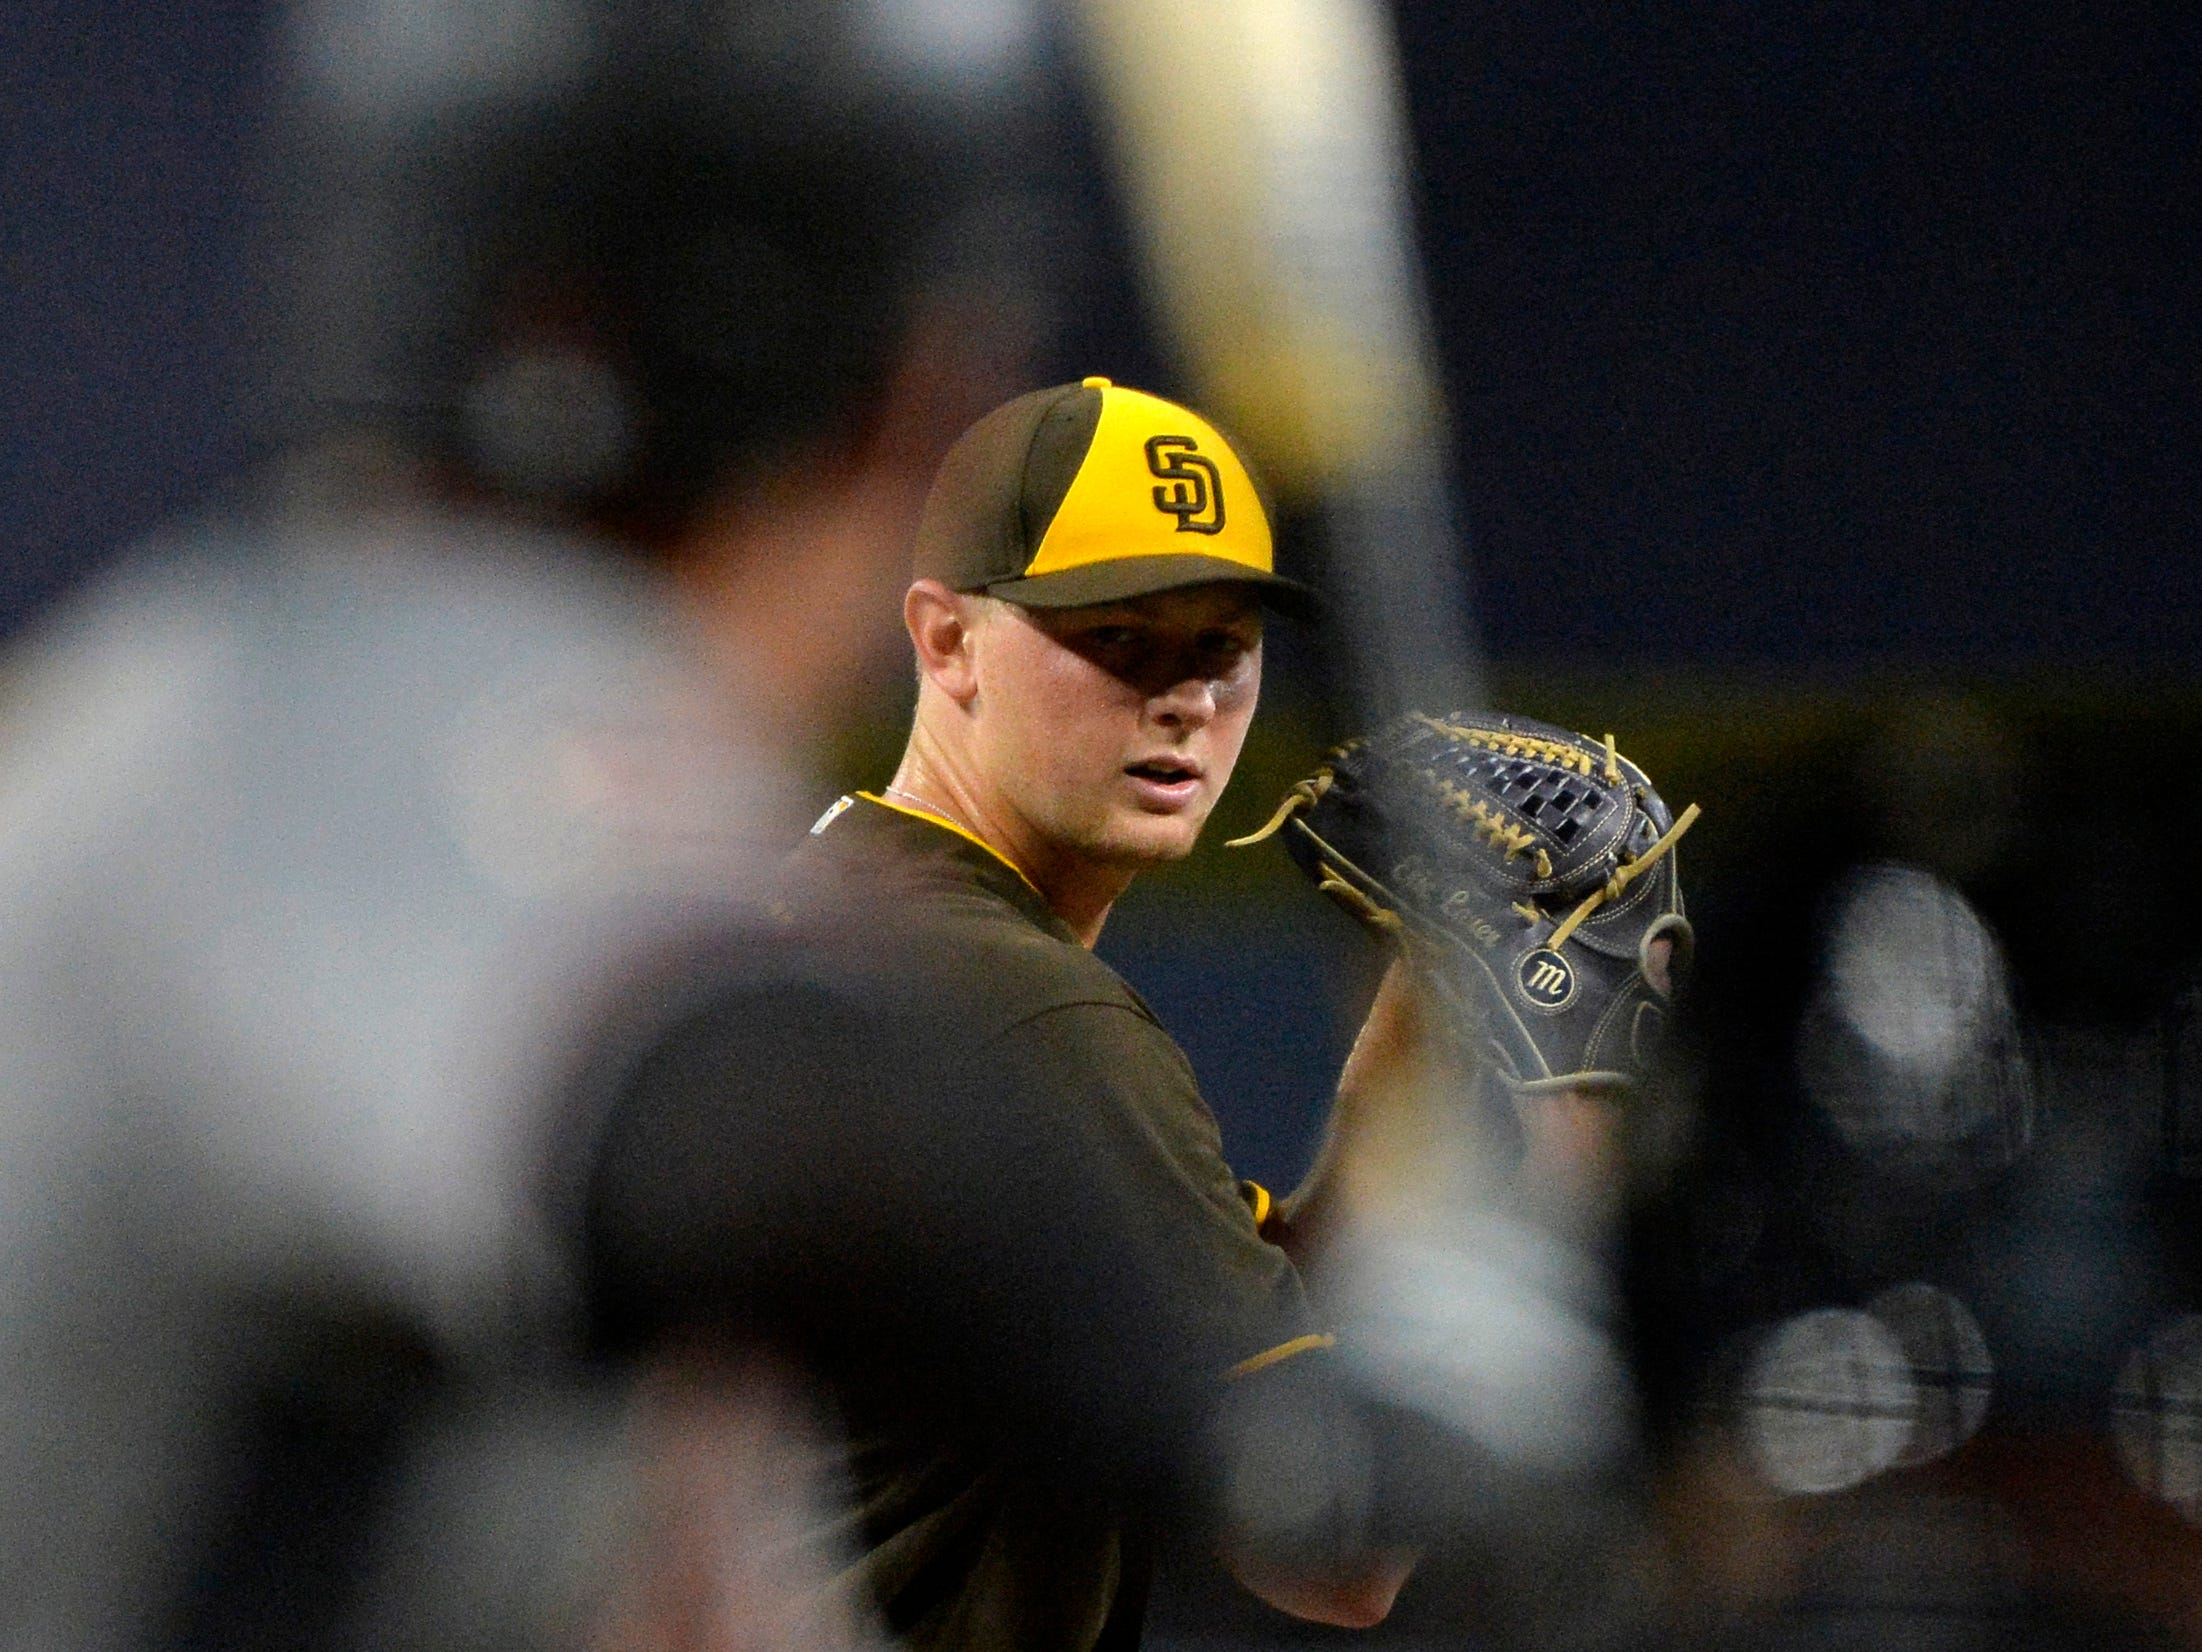 Sep 28, 2018: San Diego Padres starting pitcher Eric Lauer (46) pitches during the first inning against the Arizona Diamondbacks at Petco Park.